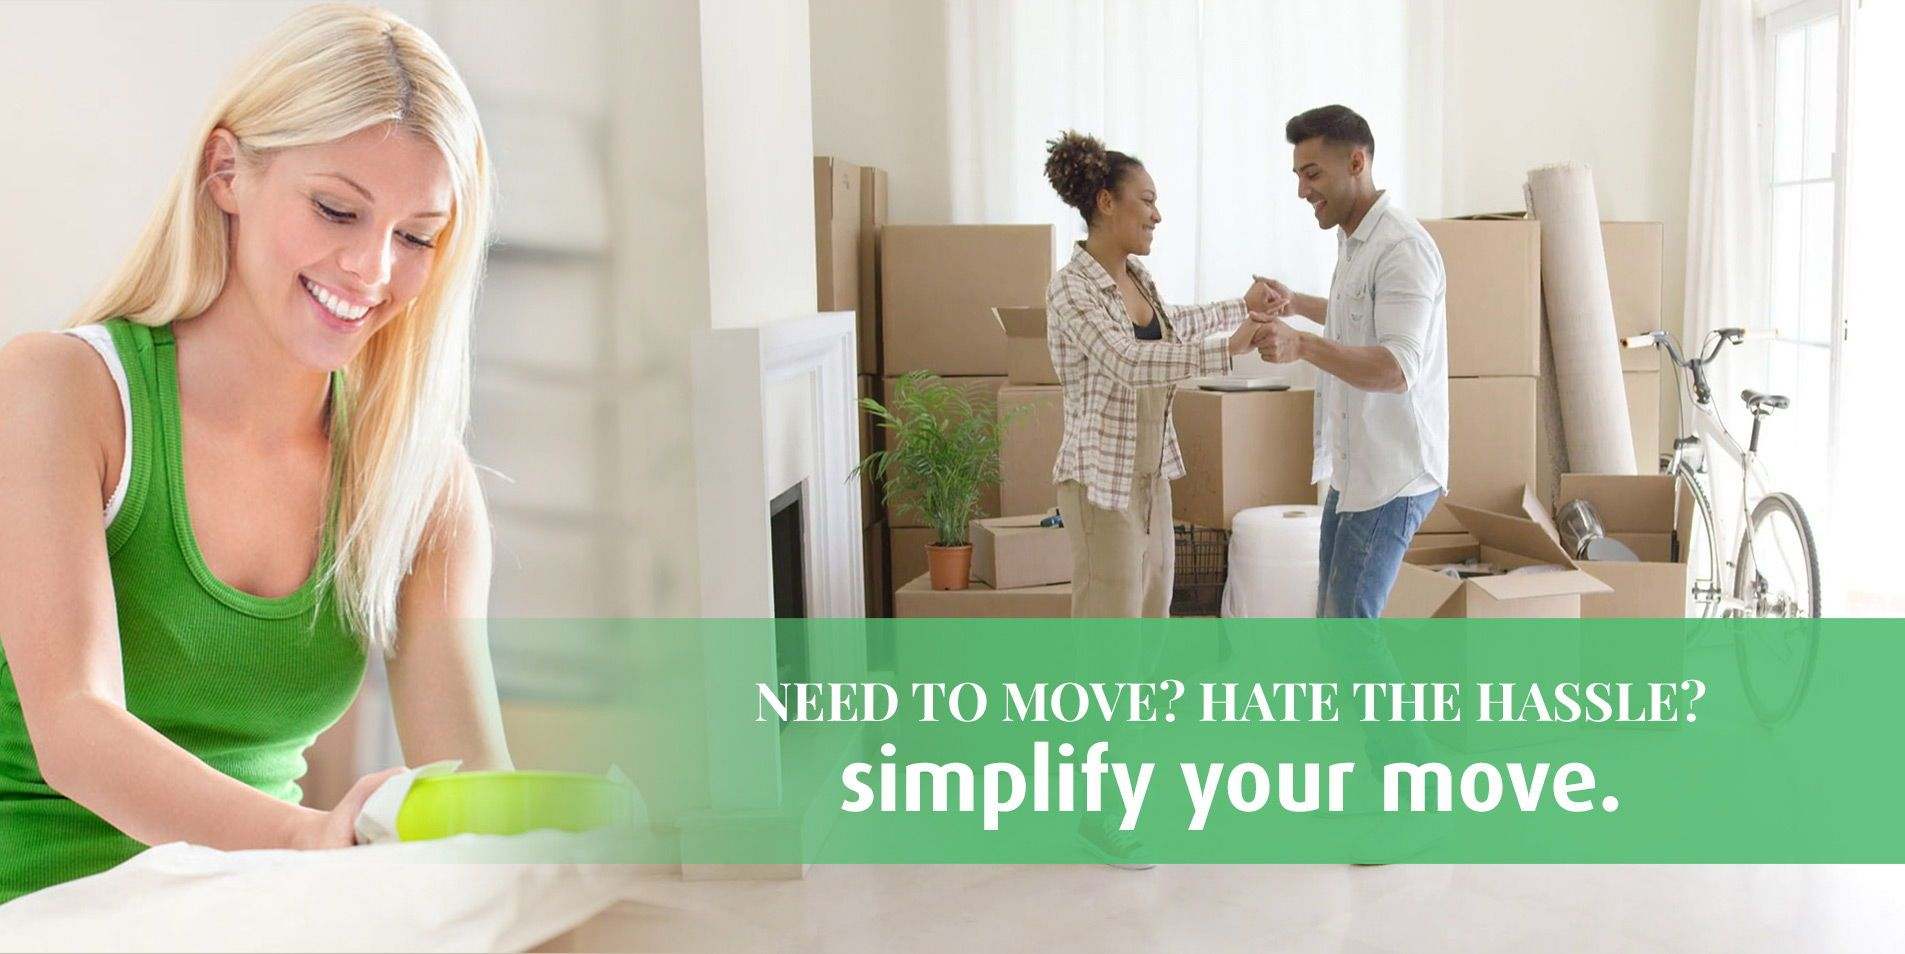 Dubai Local Movers | Best movers, Packers and movers, Best moving companies